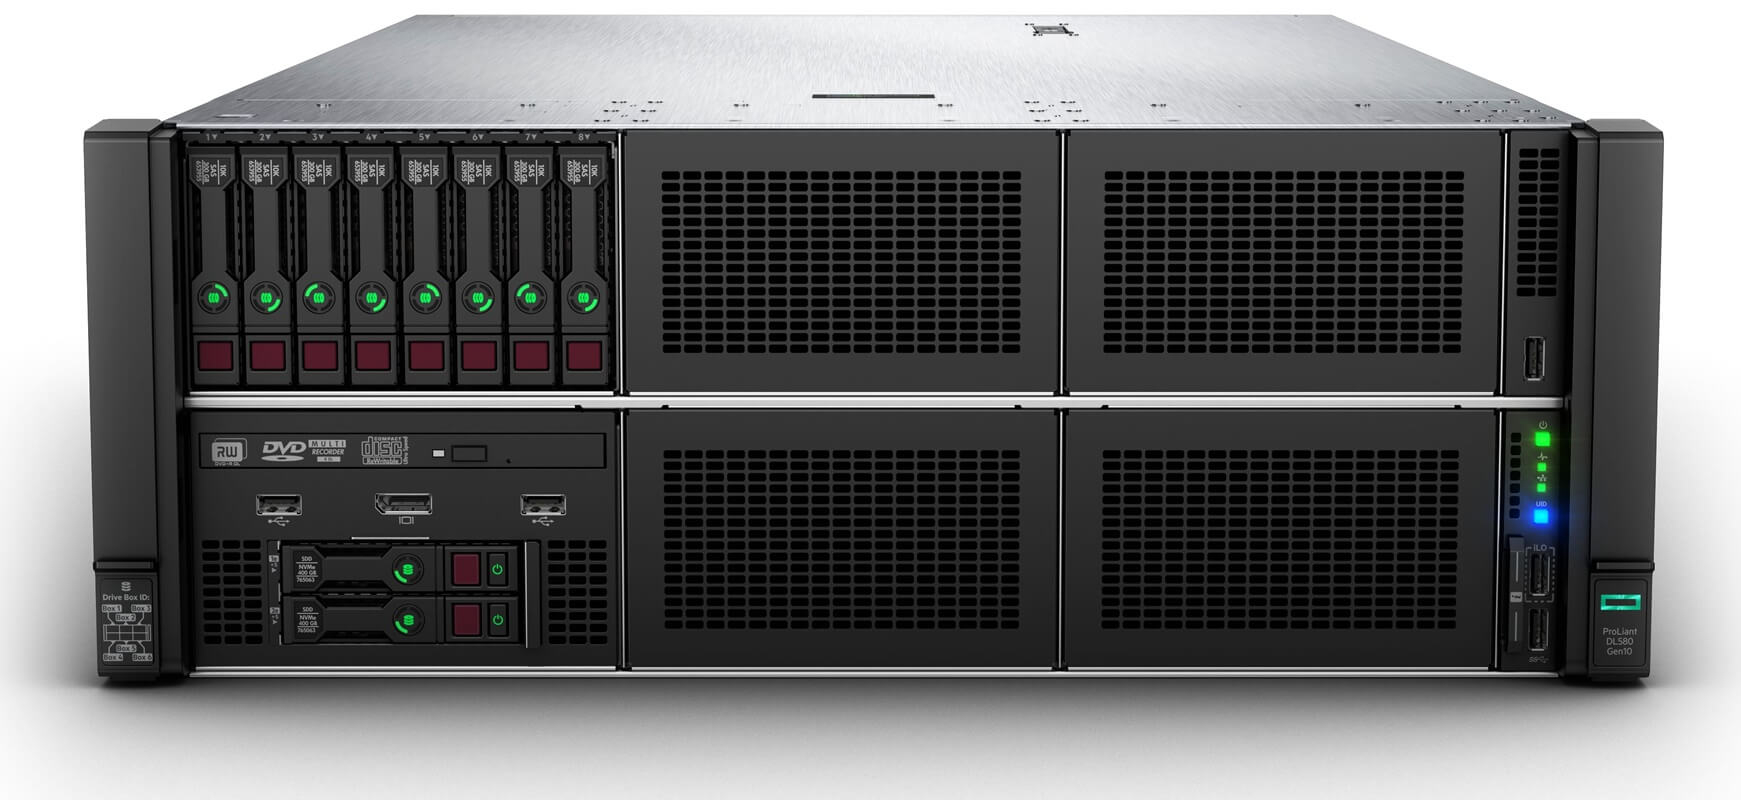 DL580 Gen10 | Servidor HPE ProLiant 2P Gold 6152 64GB P408i-a 4x160800W PS